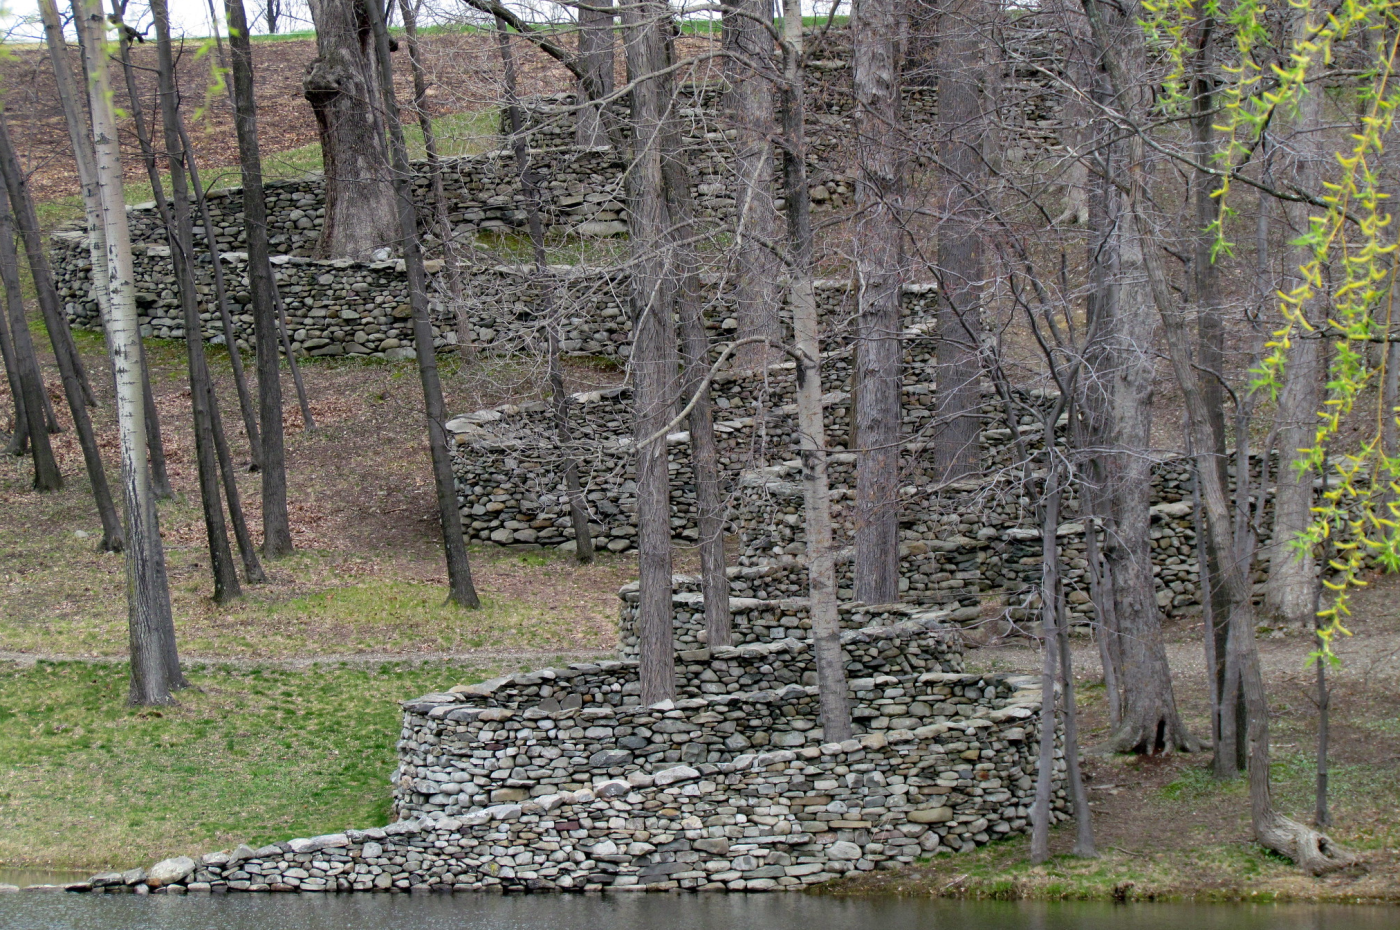 Storm King Wall, via Andy Goldsworthy